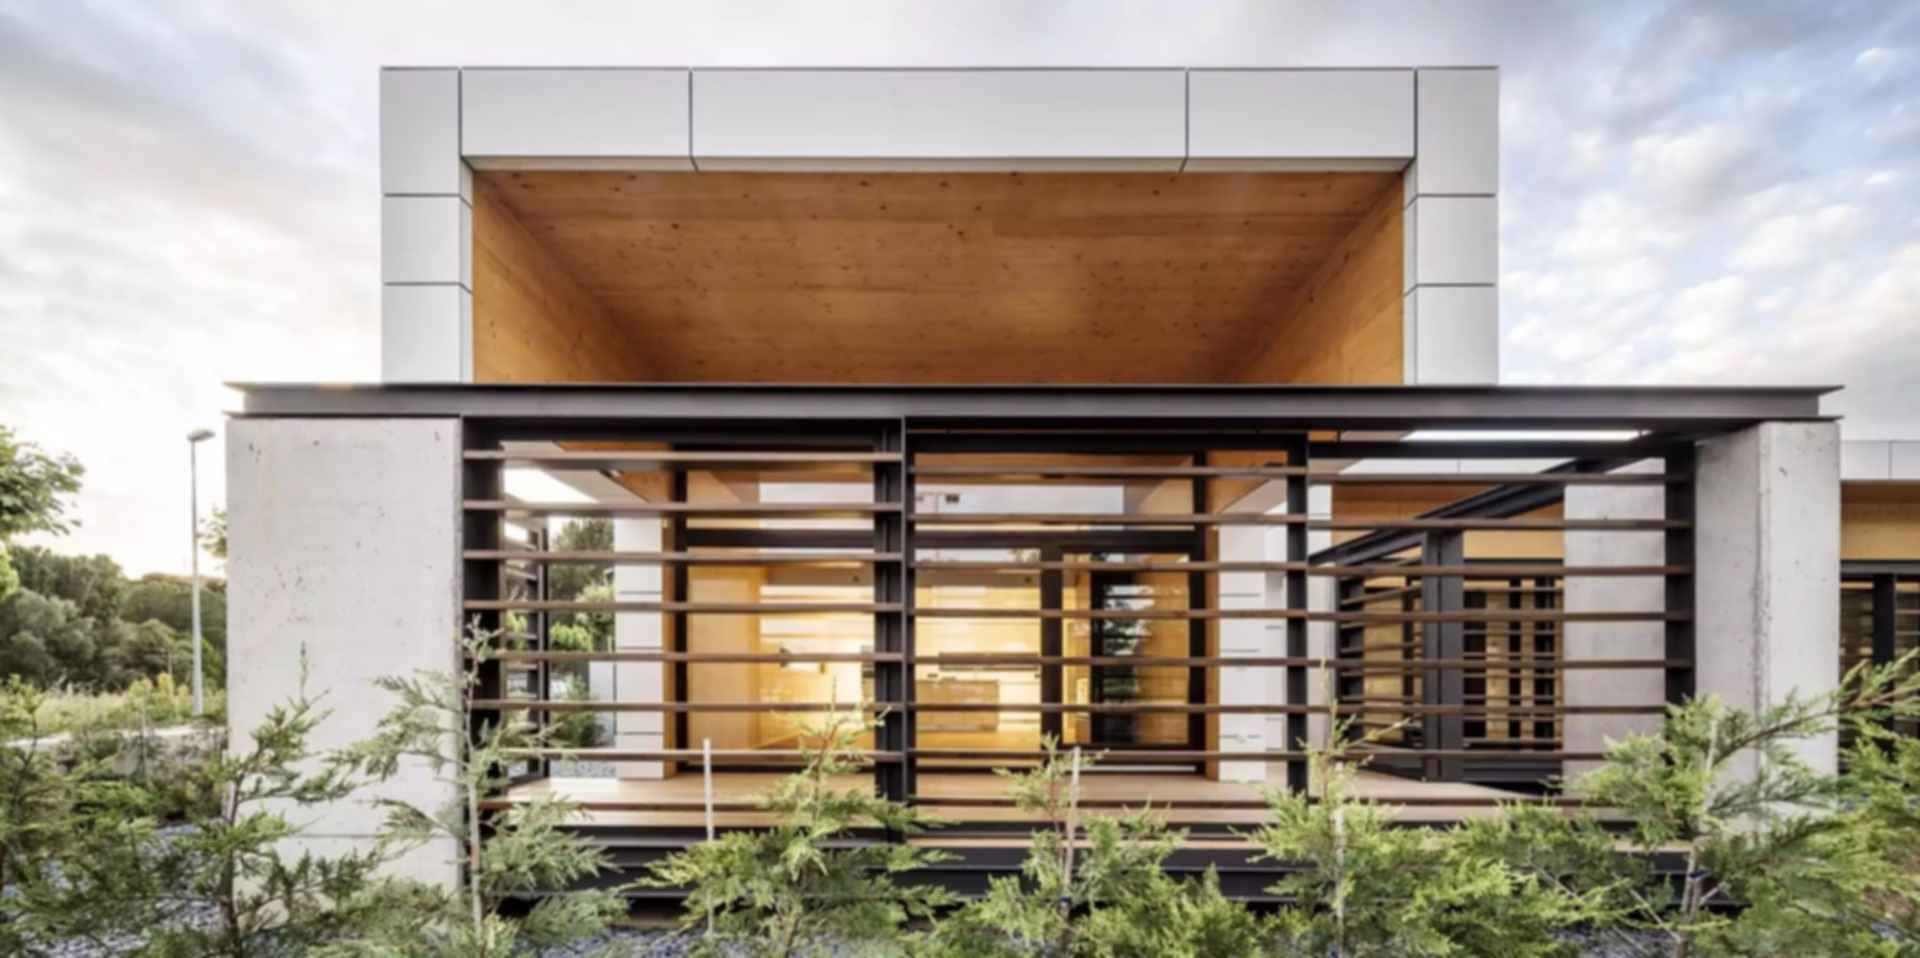 Low Energy Consumption Residences - Exterior